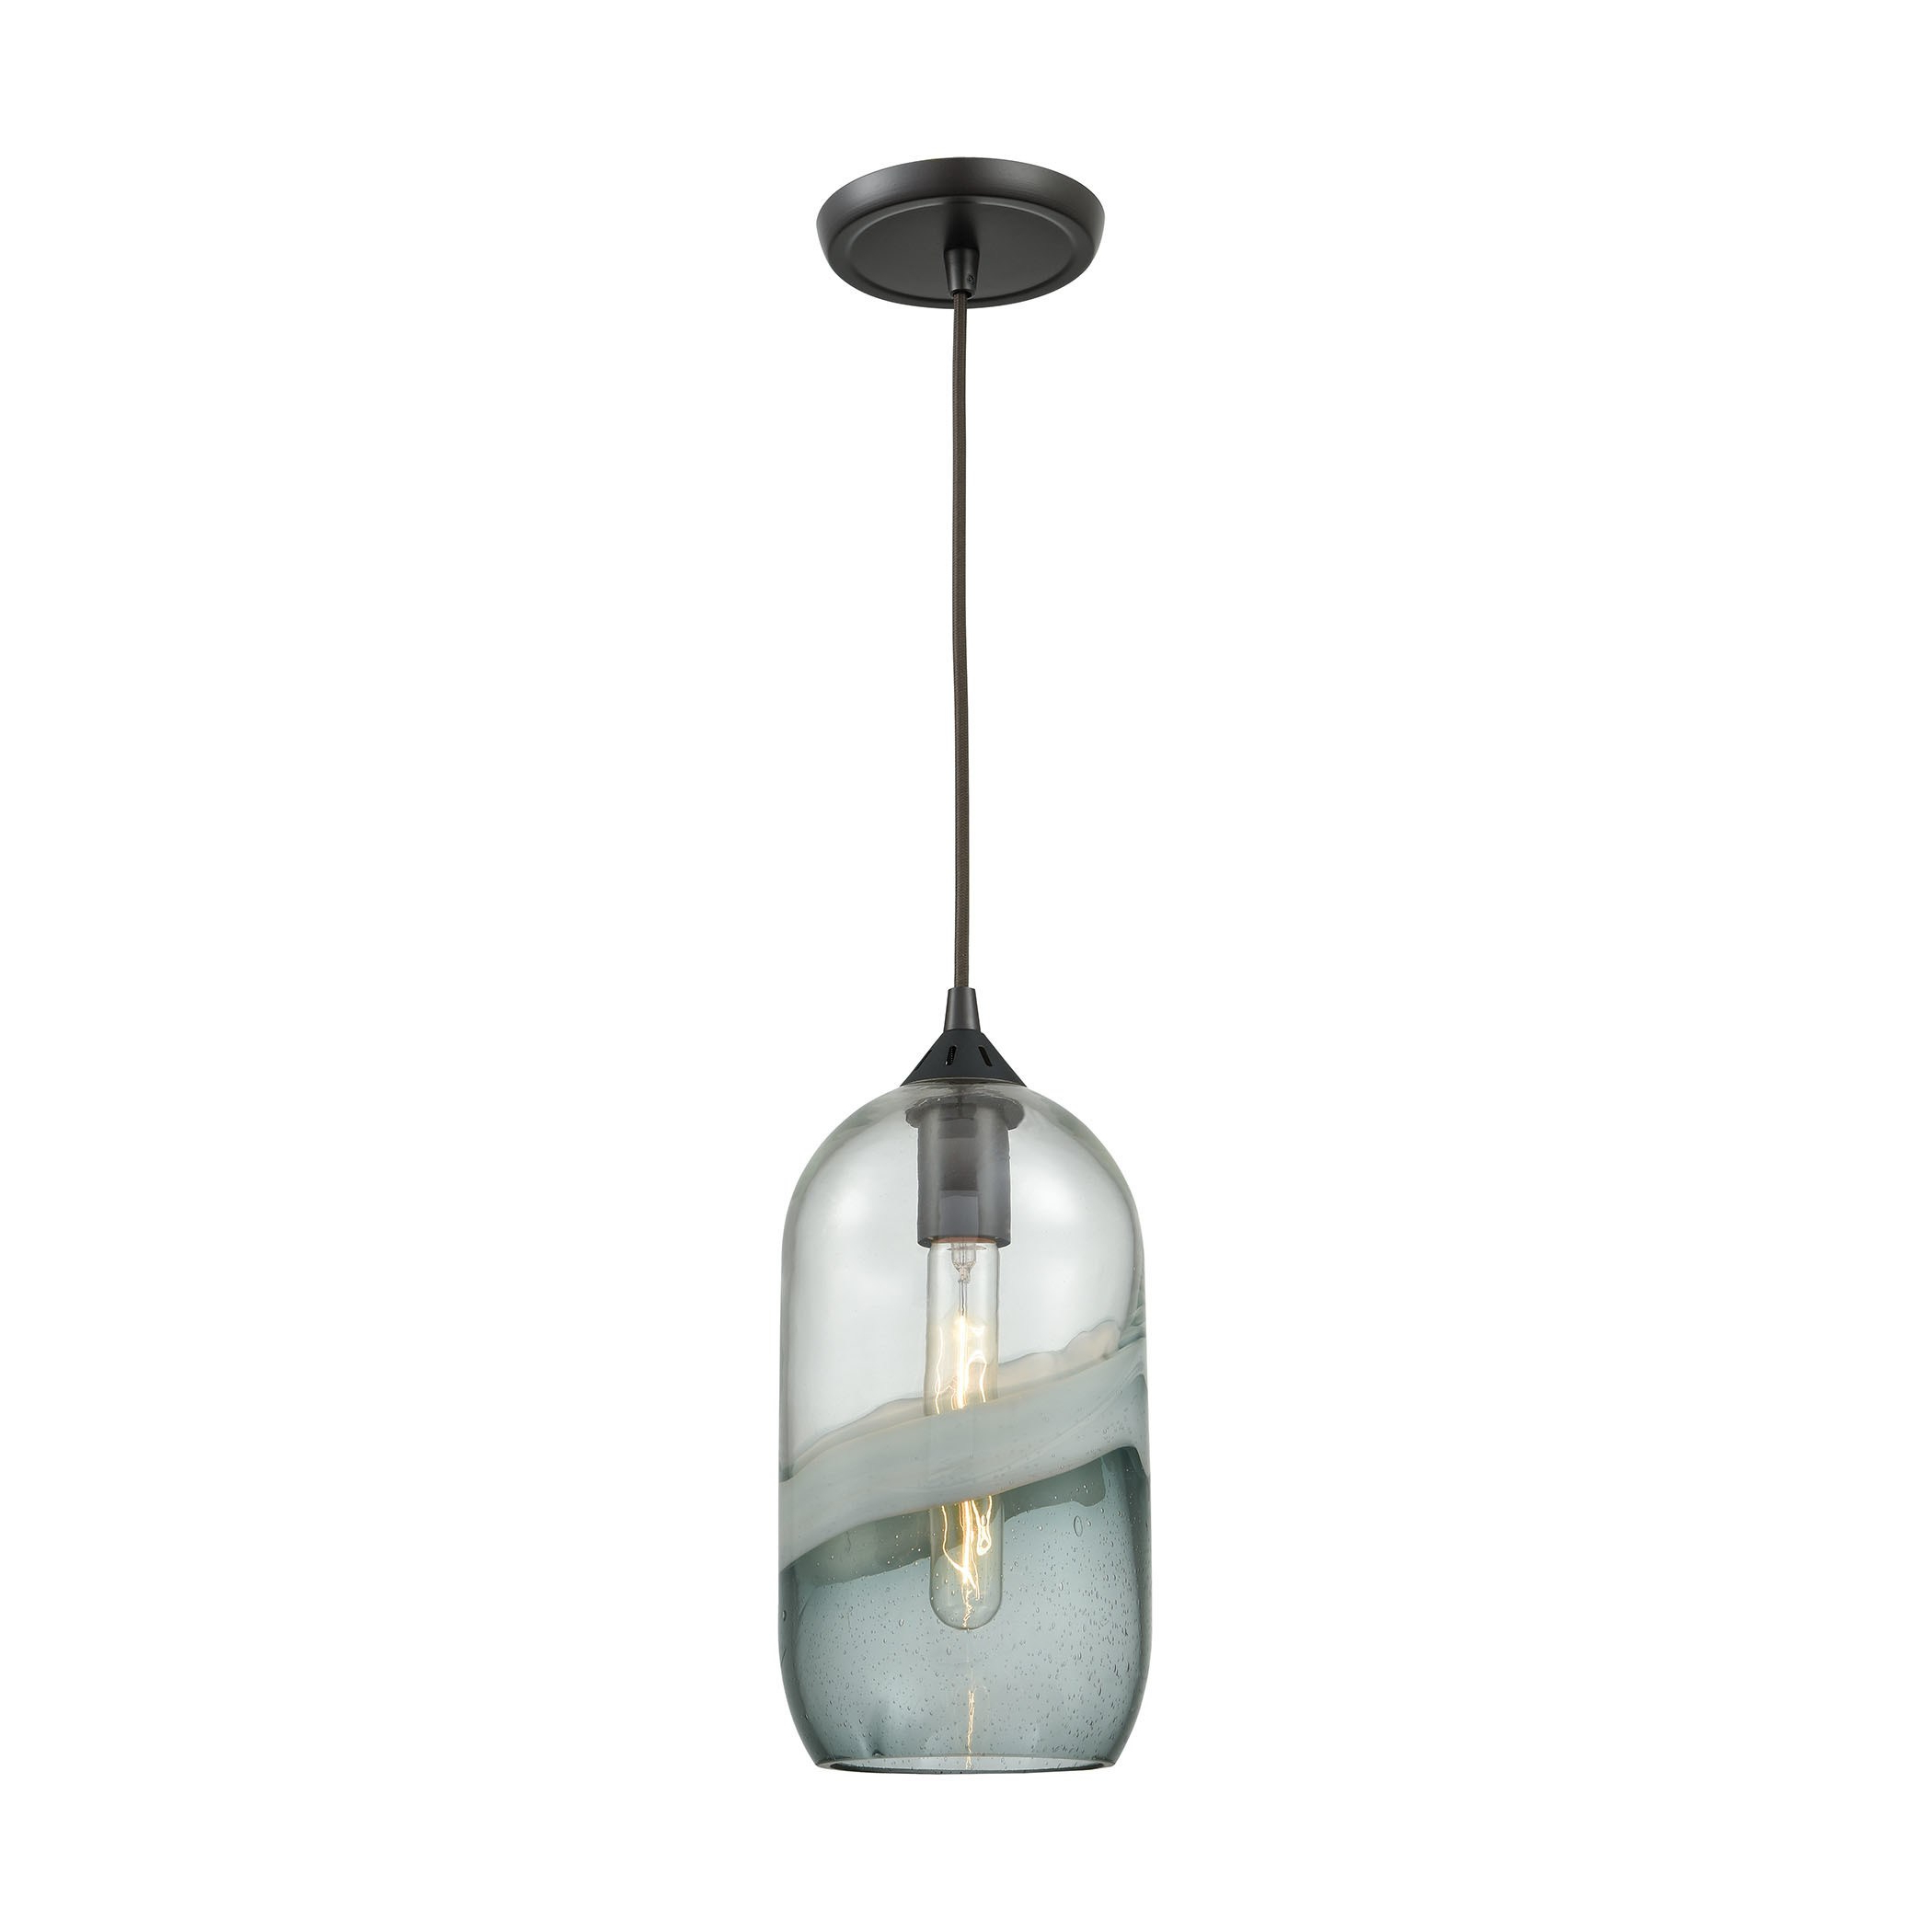 Moris 1 Light Cone Pendants Within 2019 Sutter Creek 1 Light Pendant, Oil Rubbed Bronze In  (View 8 of 25)